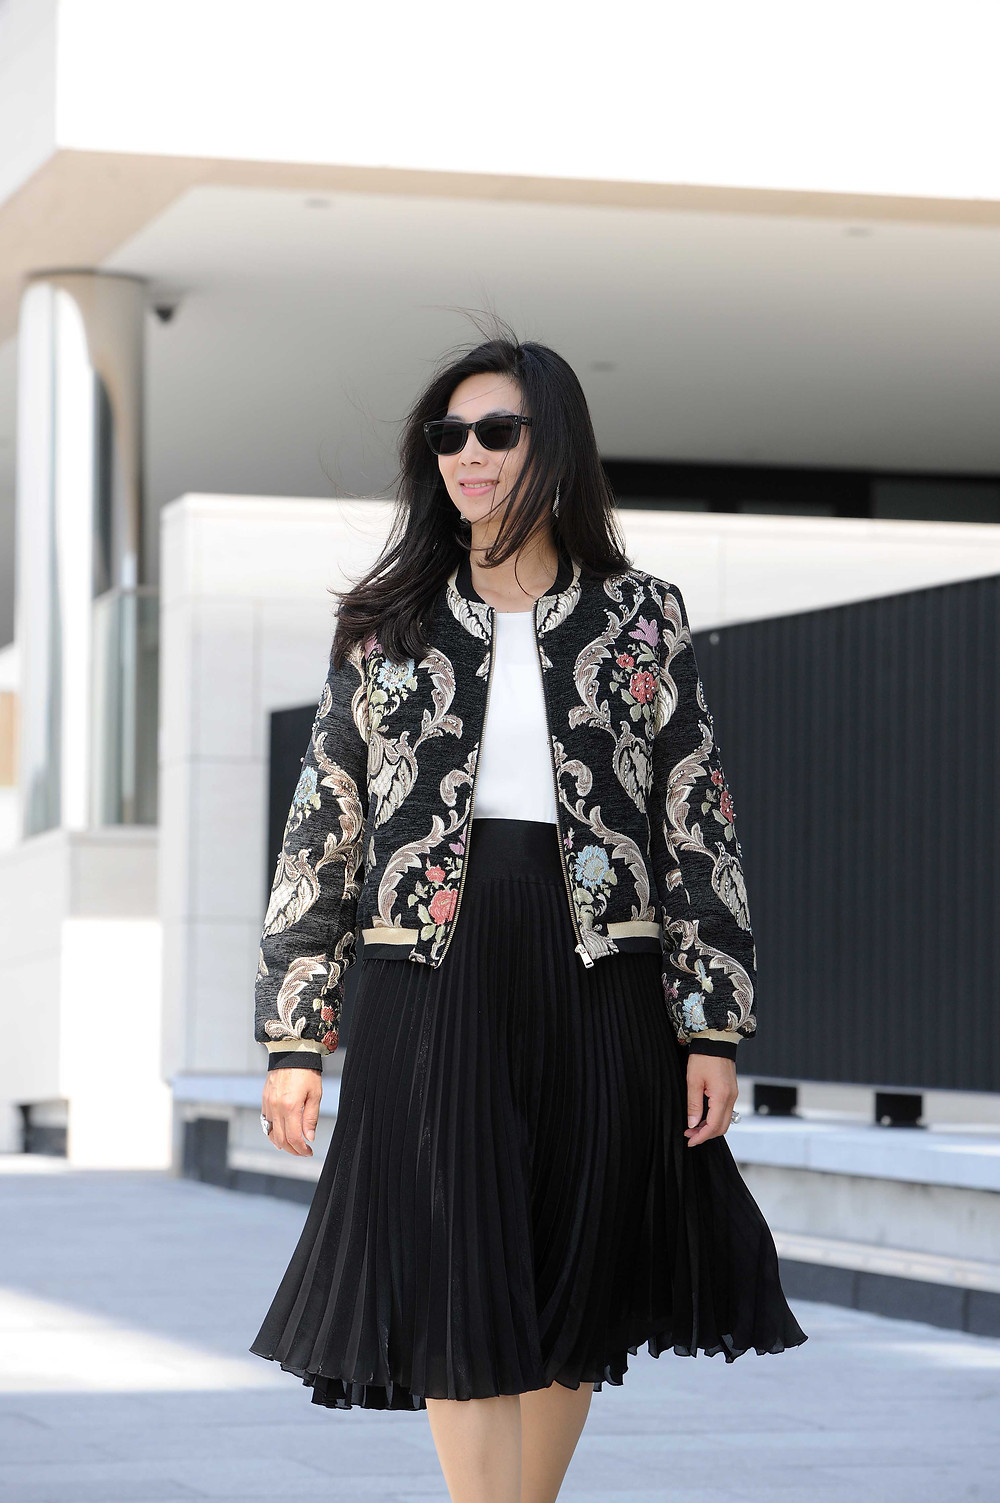 Business Casual woman outfit with a floral bomber jacket and black pleated skirt from Karen Millen